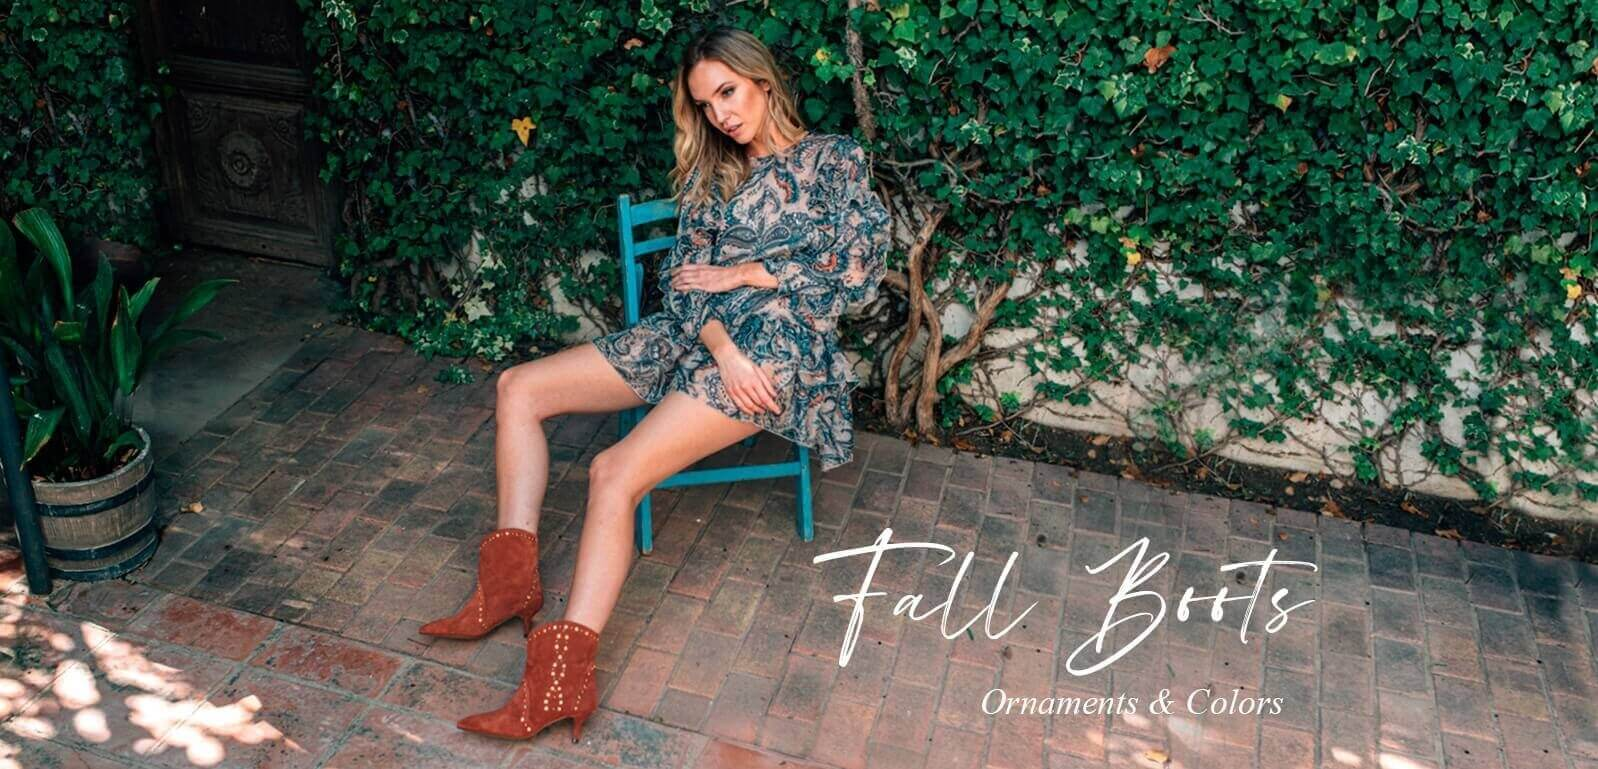 Fall Boots - Ornaments & Colors